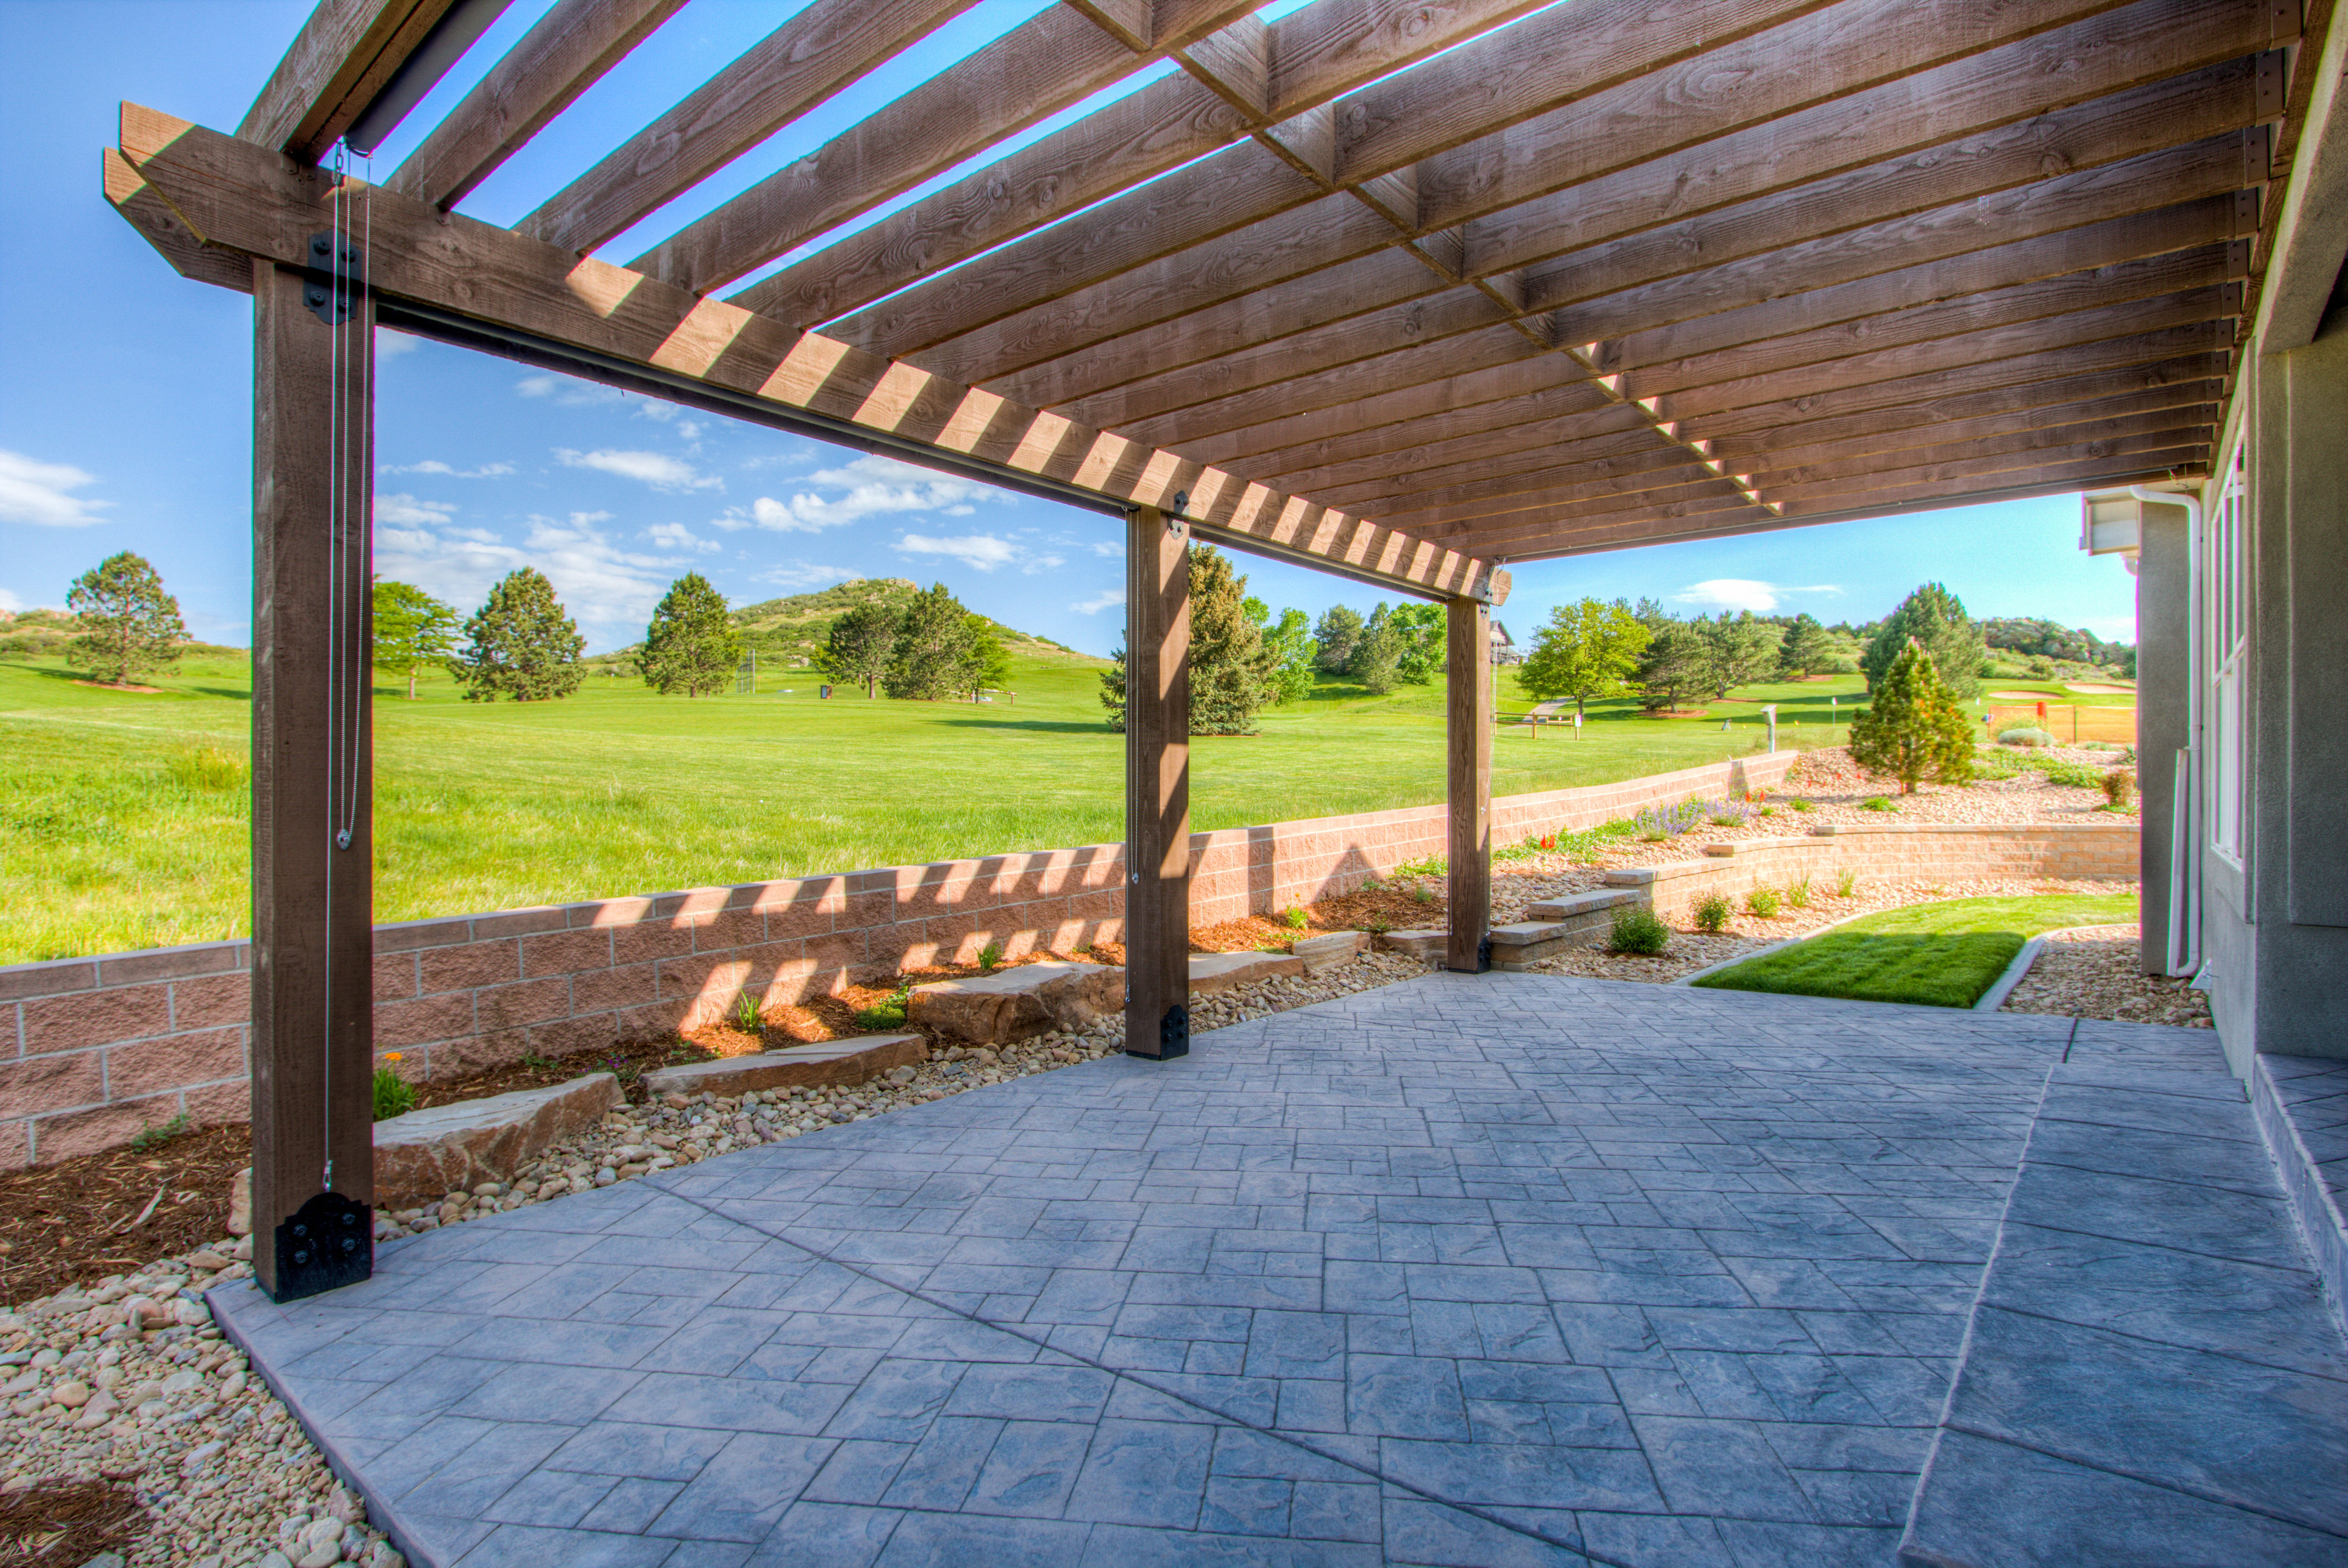 30_4796_20mariana_20hills_20circle_loveland_pergola_20and_20golf_20course_20view_dream_20homes_20for_20sale